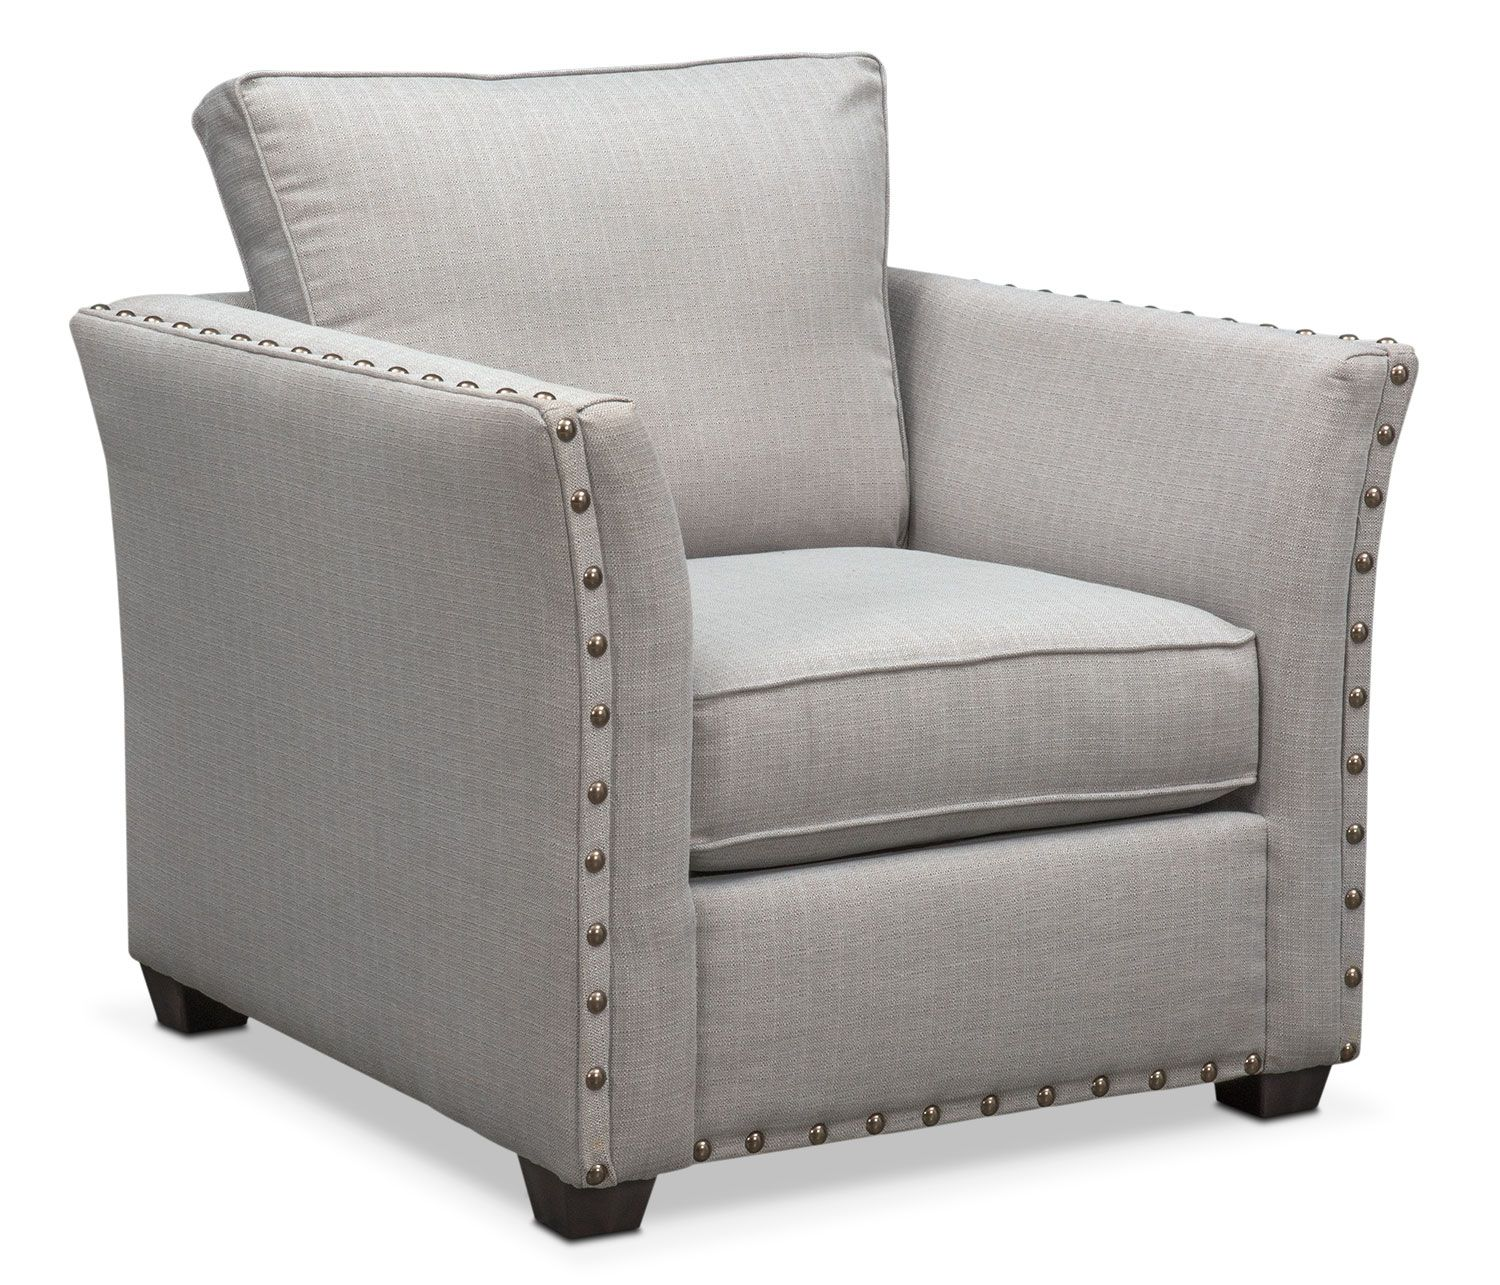 Built to Last. Make a grand statement with the Mckenna chair that exudes classic appeal. With its comfortable seating, this furniture features oversized nailhead trim adorning the ever-stylish flared arms. The relaxing gray fabric is versatile and will match any décor.